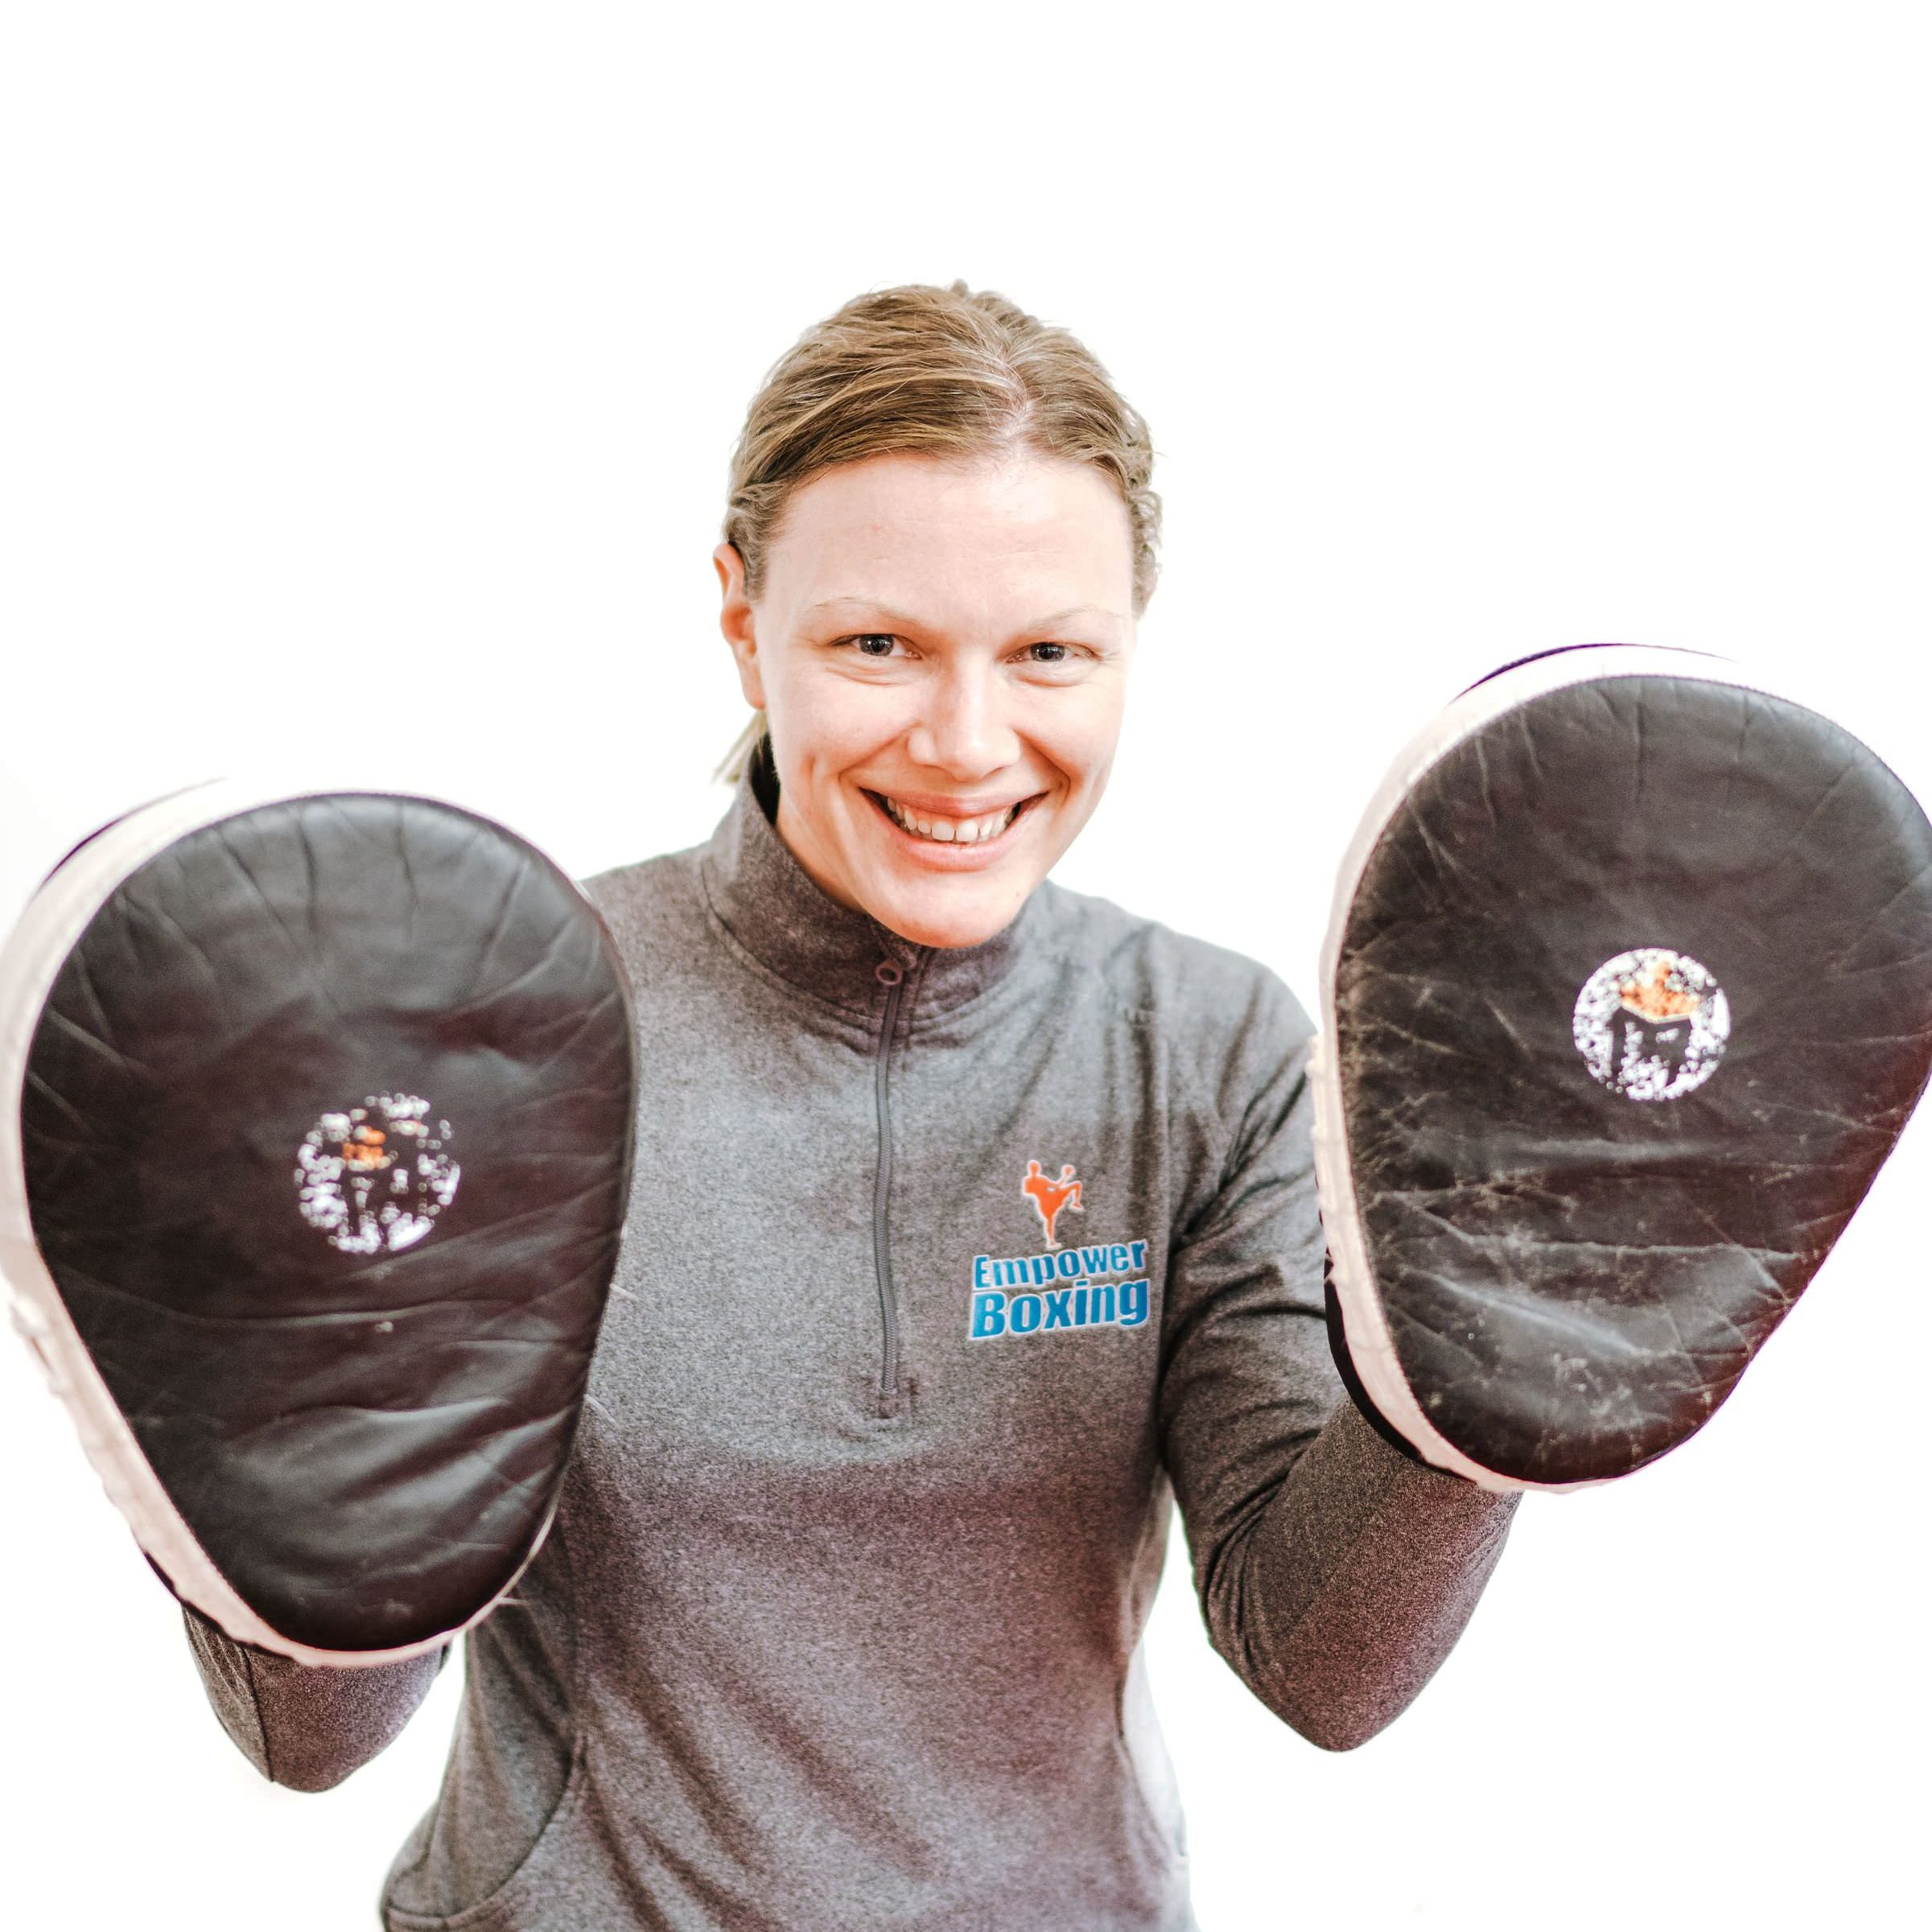 head instructor empower boxing and co-owner enriching confidence Dani Waltzing